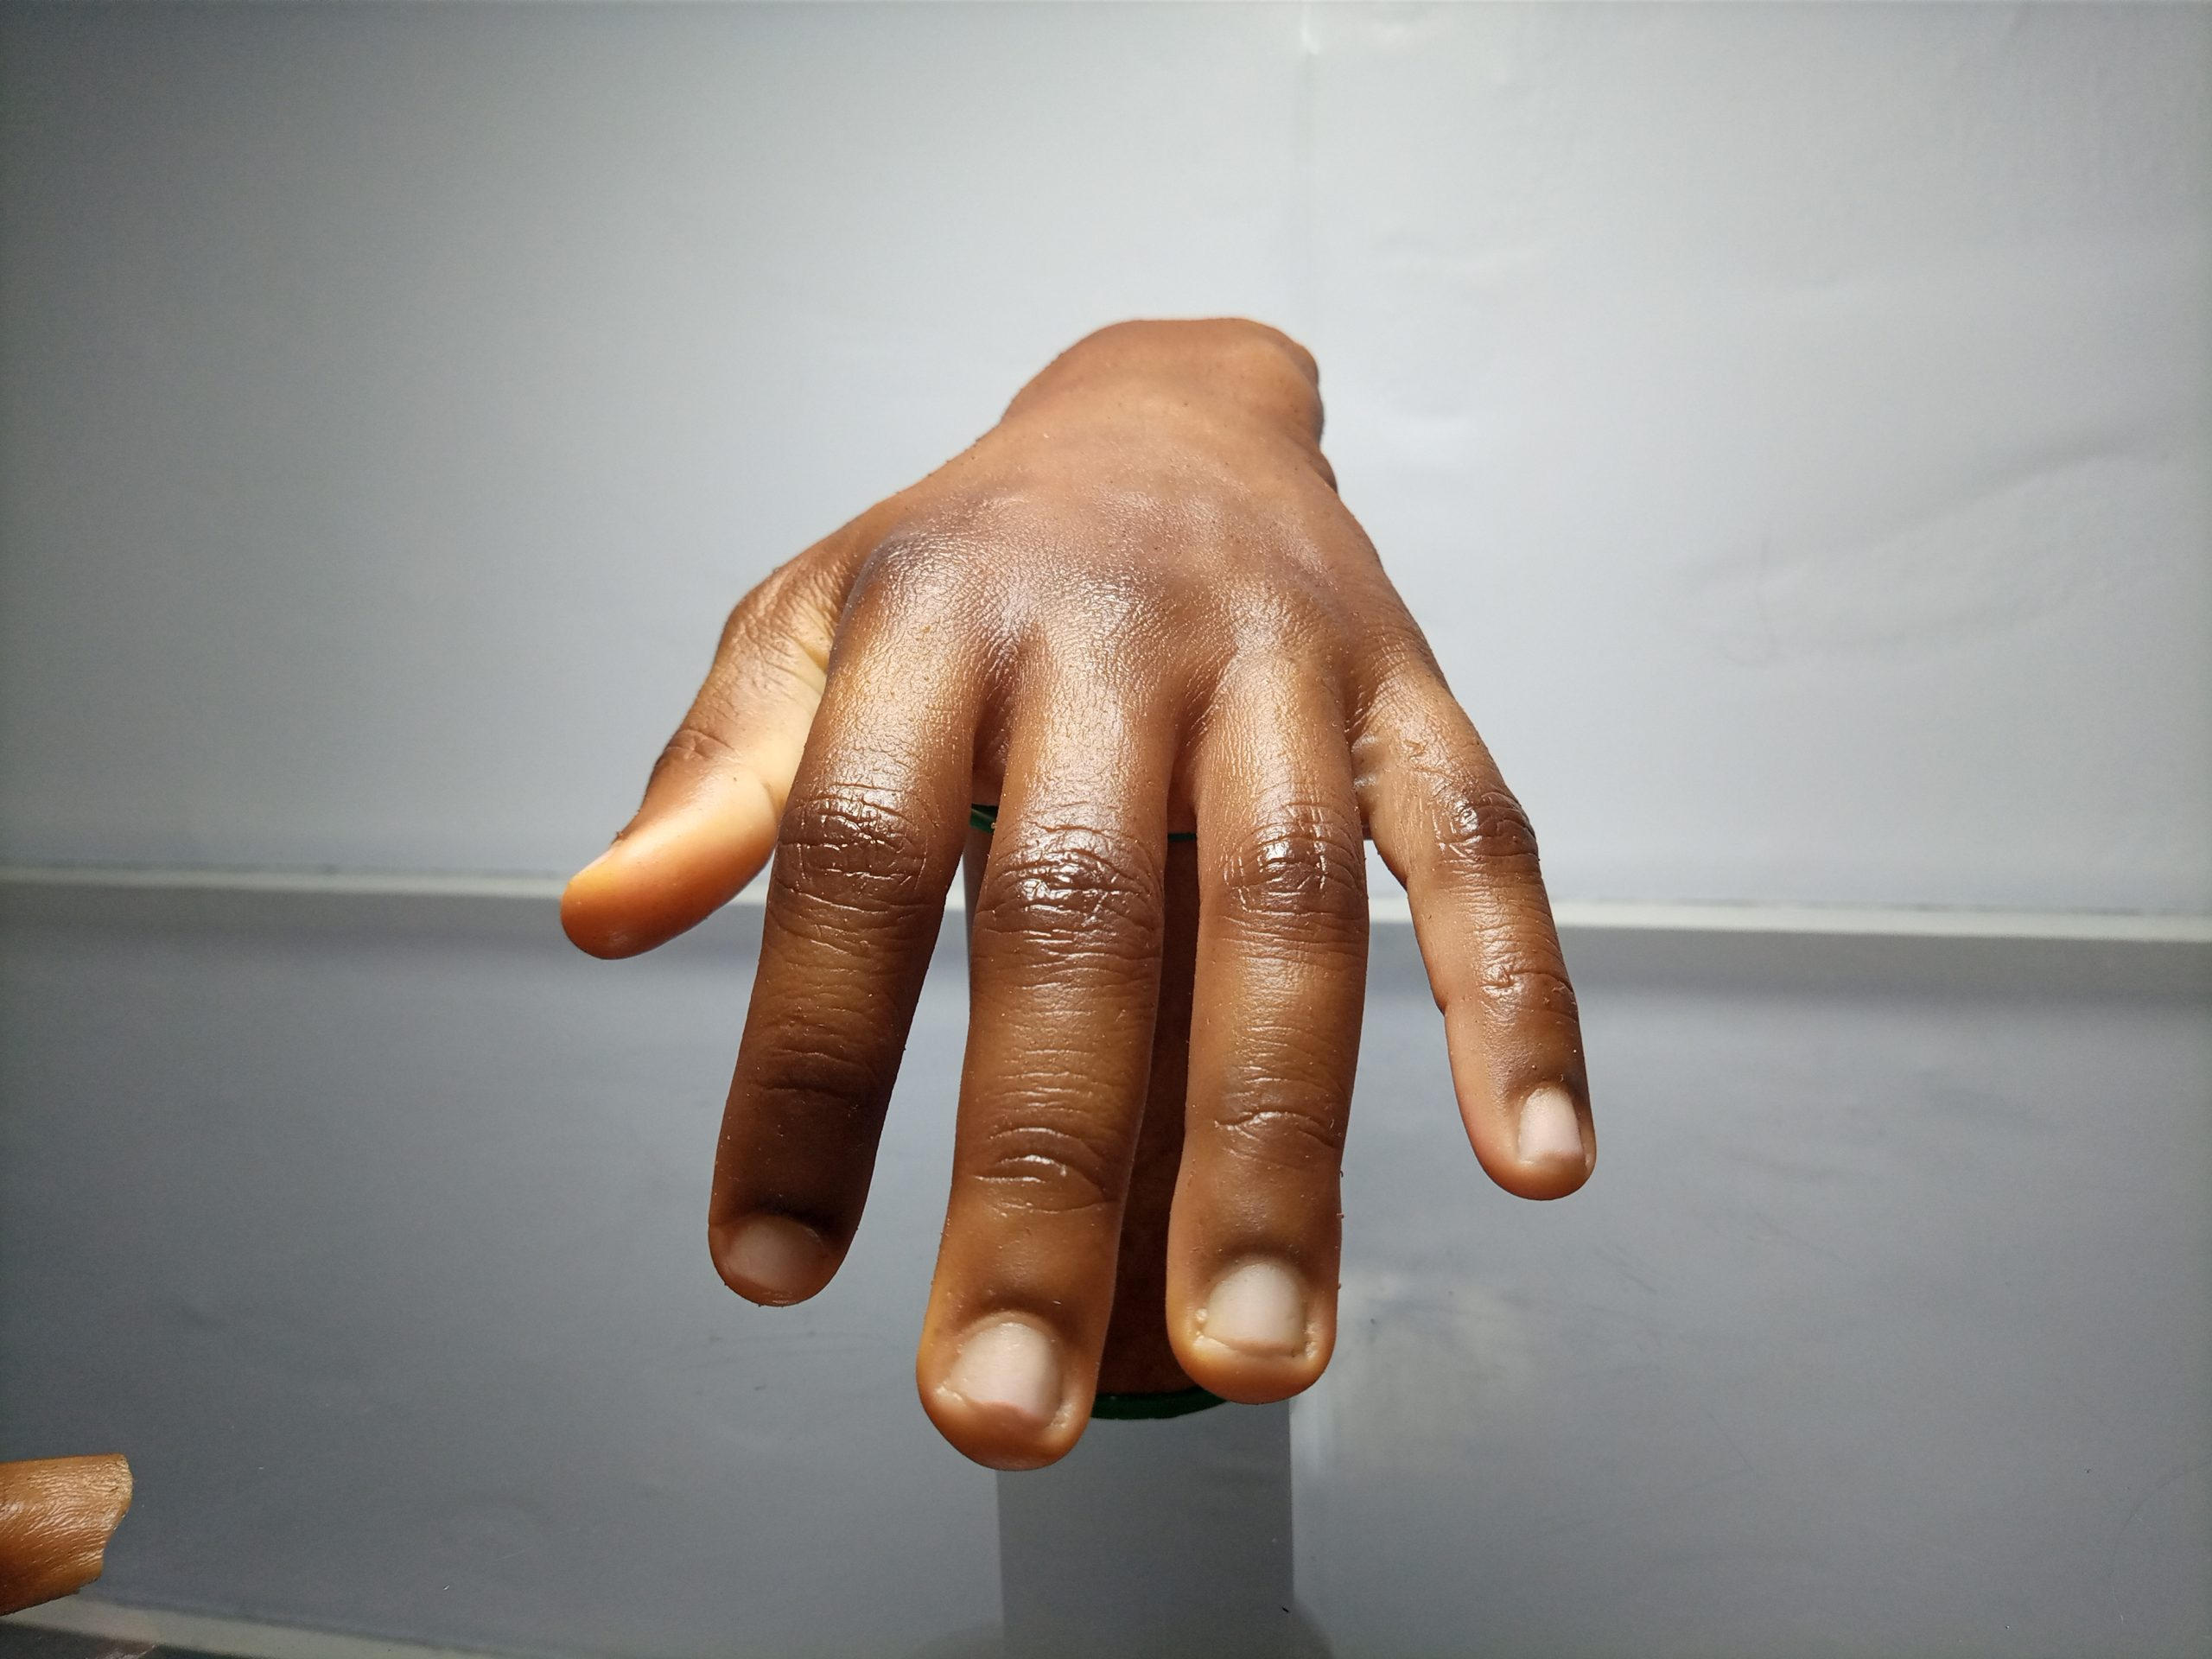 A Sculptor and Former Special Effects Artist Is Paving the Way in Prosthetics for Darker Skin Tones